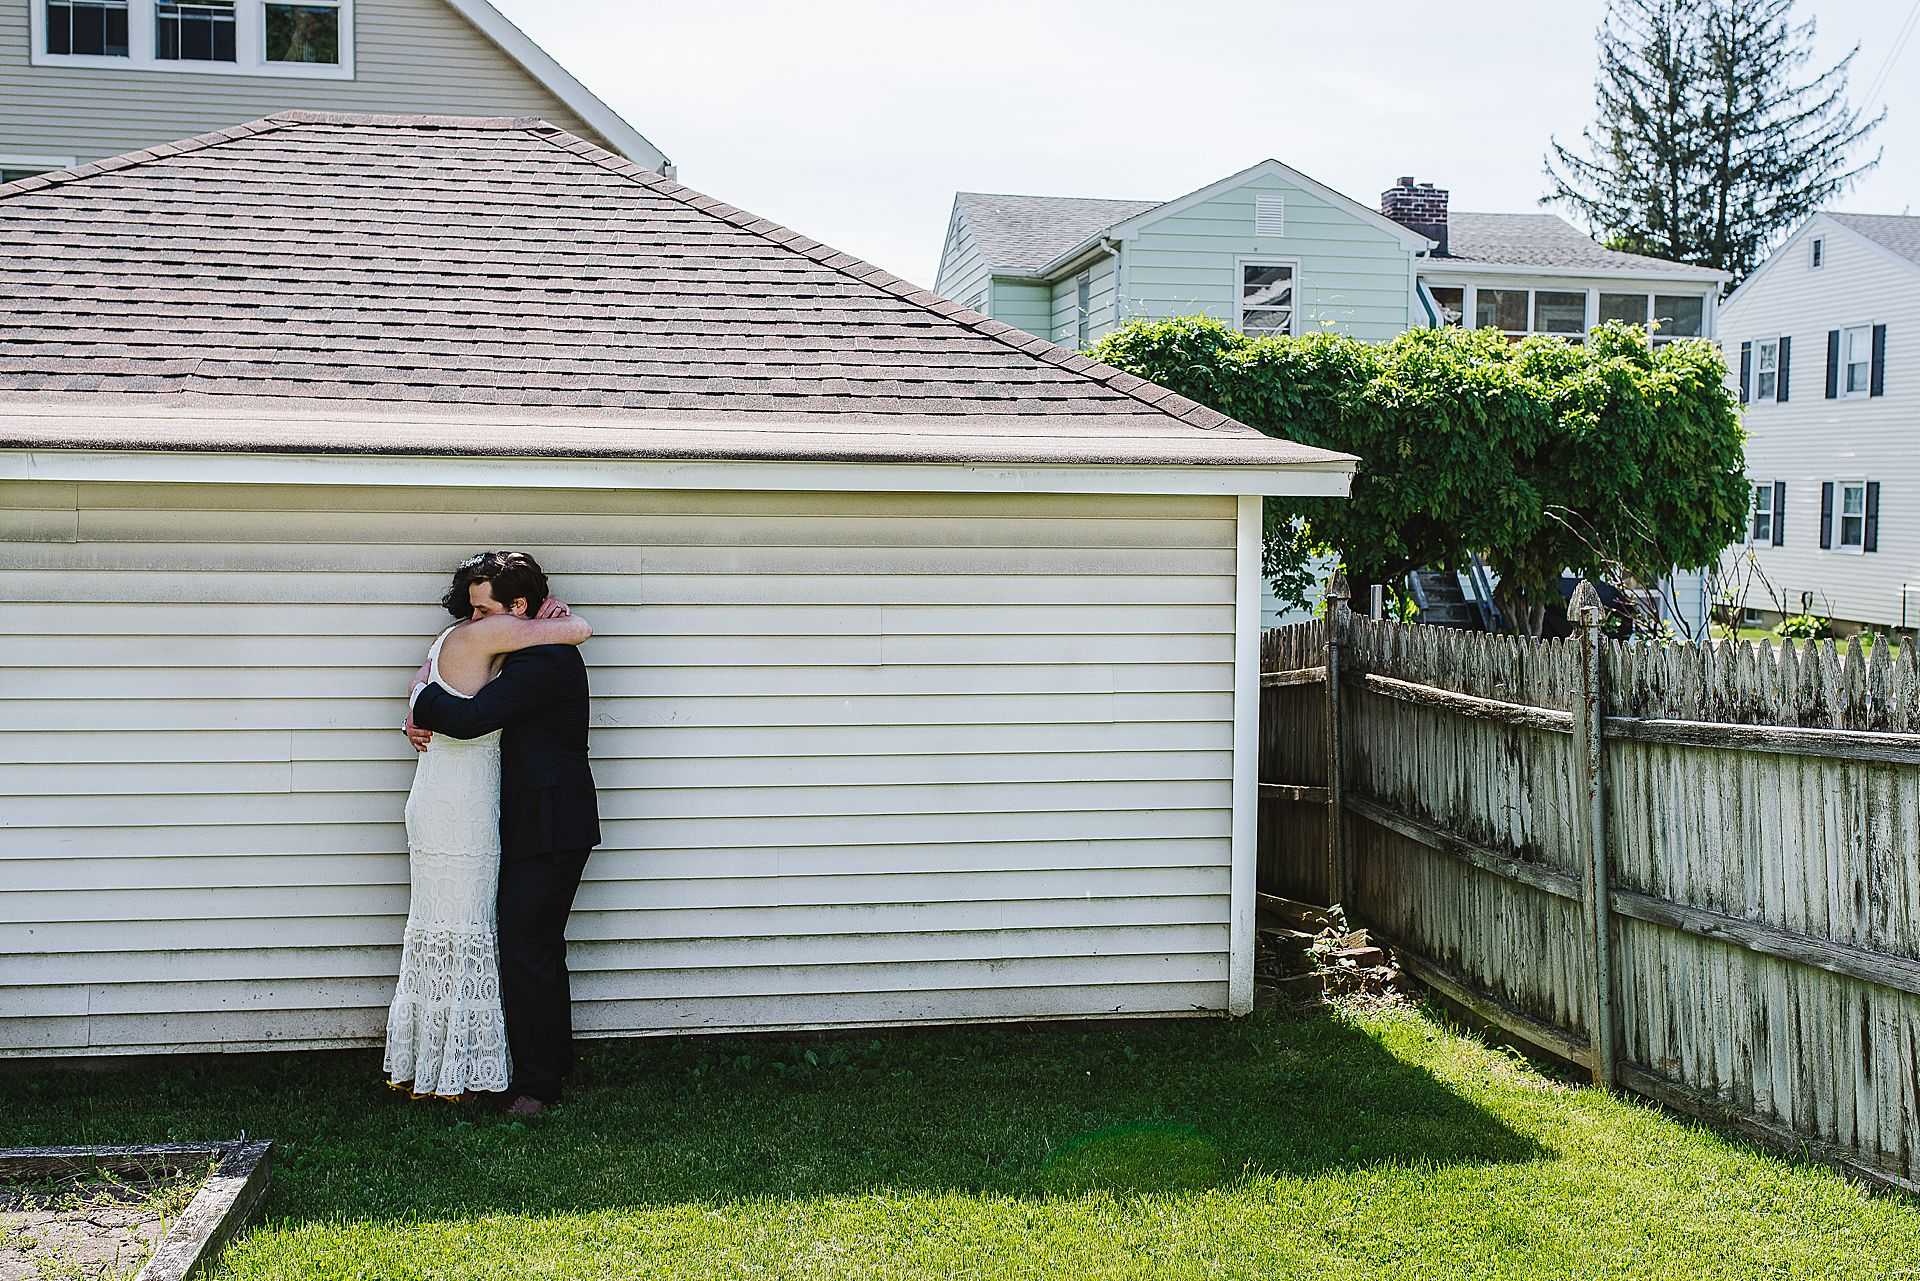 Norwalk CT Wedding Photographer | The groom takes the bride into his arms after seeing her for the first time in her wedding dress